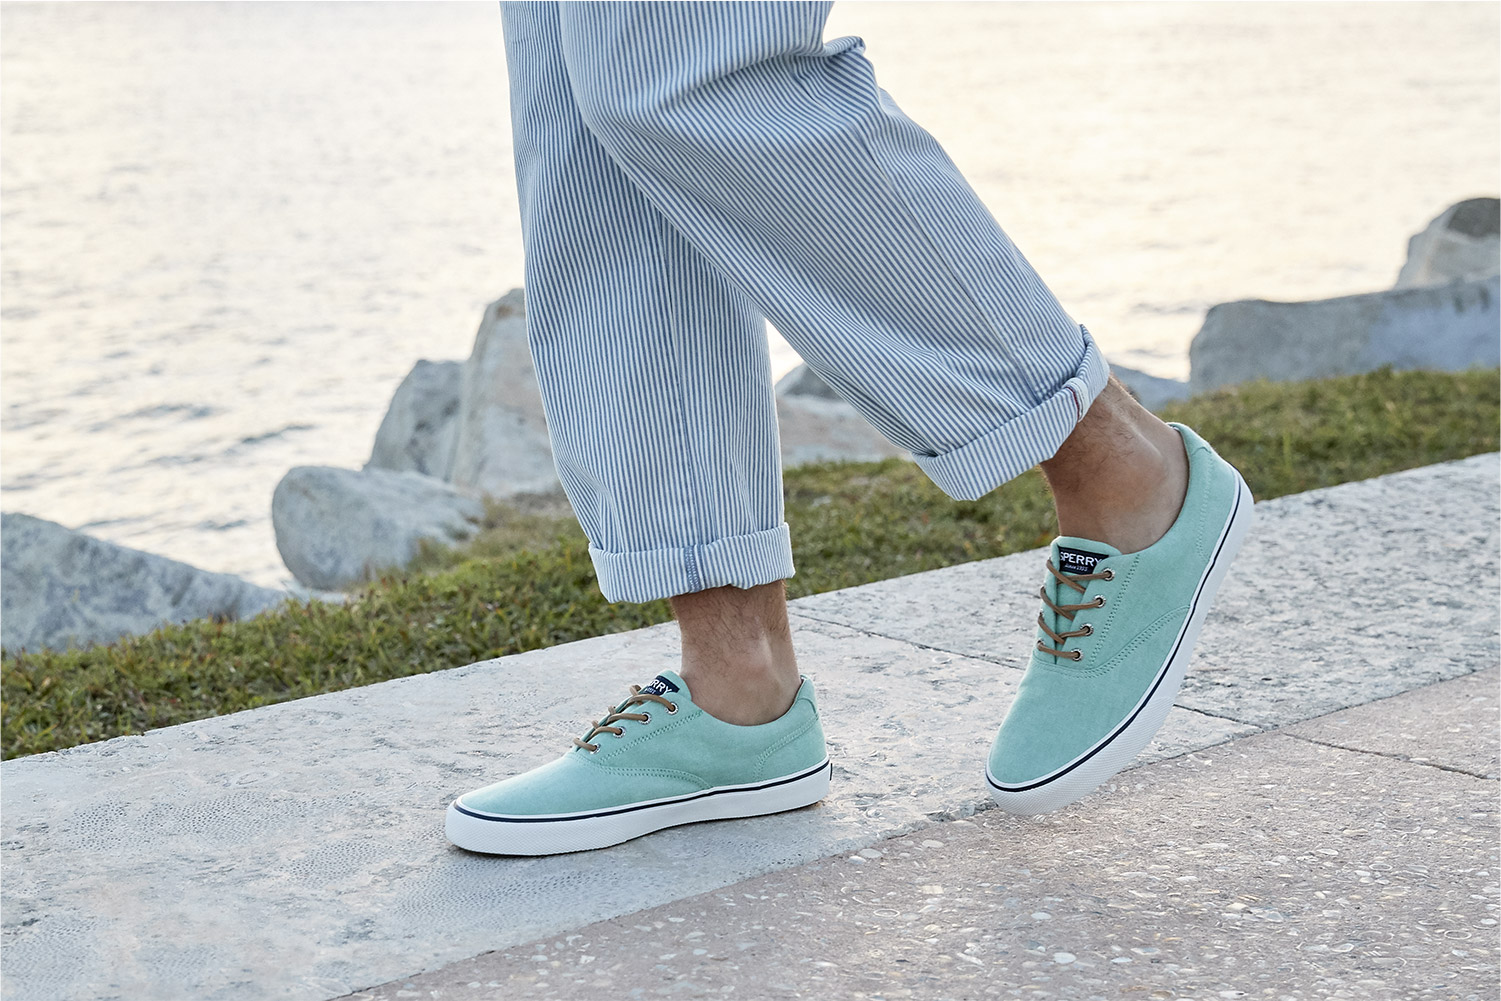 Man's leg wearing teal-colored striper sneakers overlooking the water